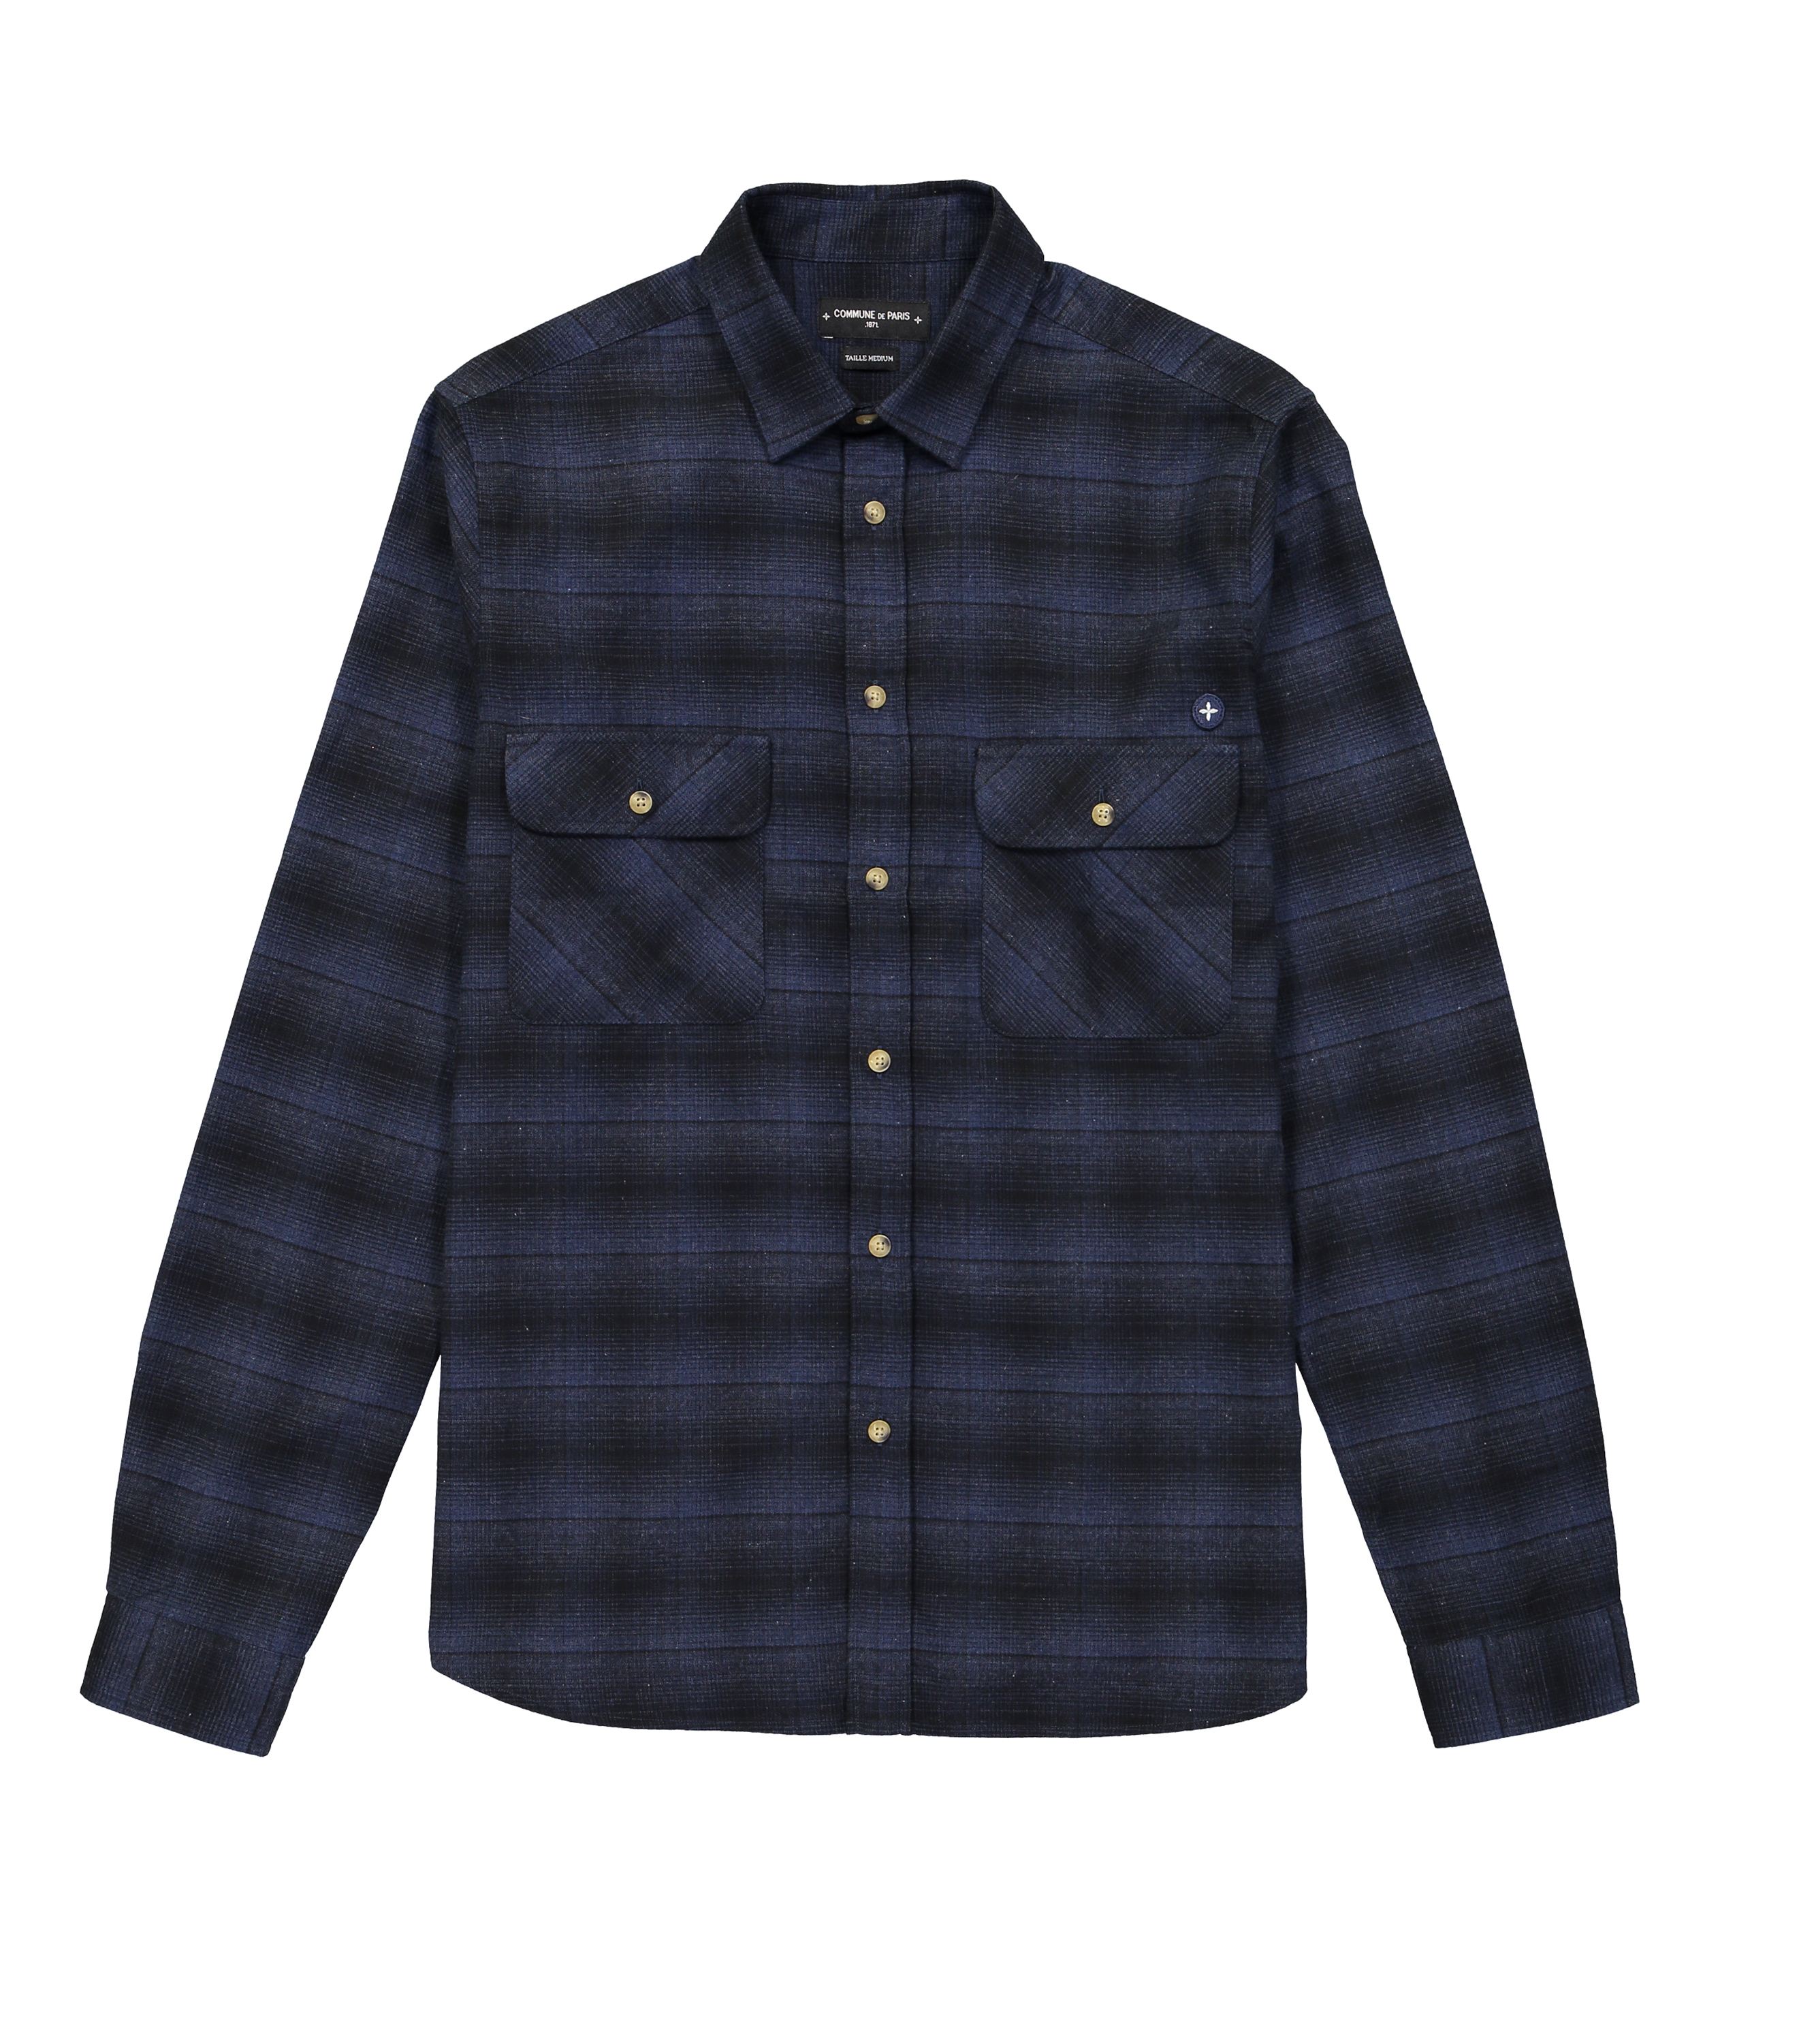 CHEMISE FERDINAND - Navy checks